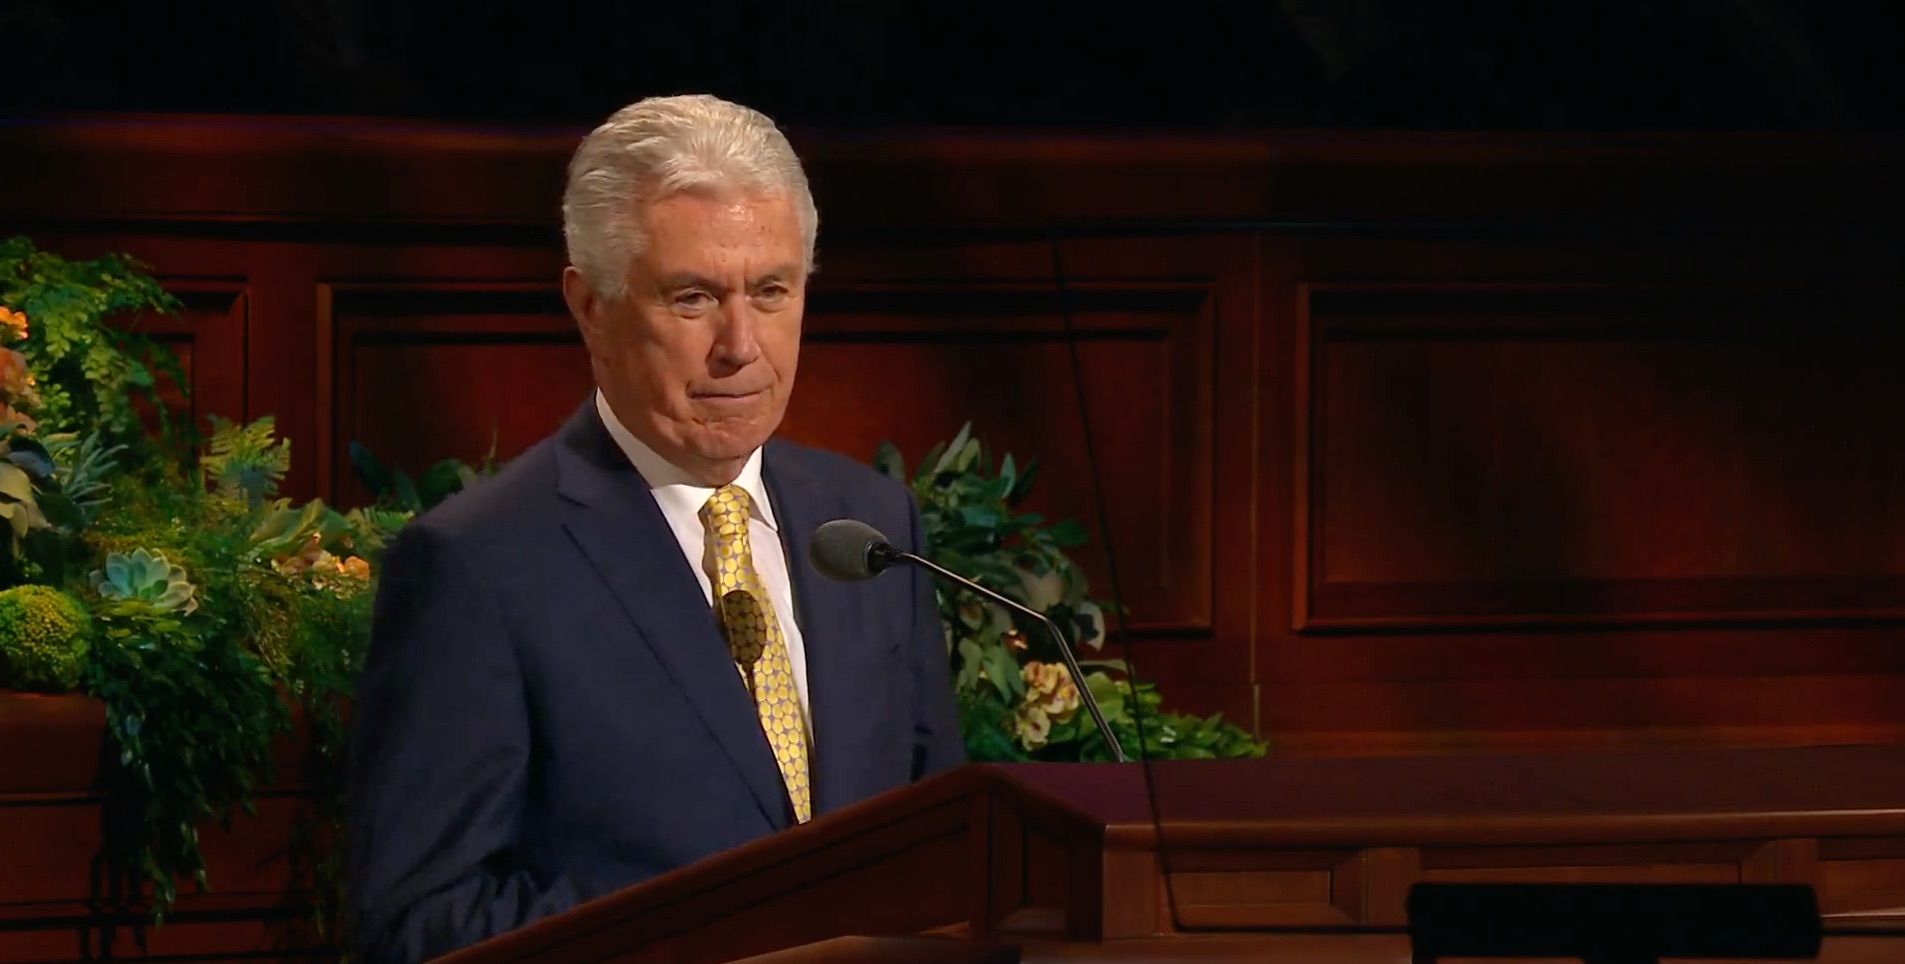 Elder Dieter F. Uchtdorf of the Quorum of the Twelve Apostles gives his address during the Saturday morning session of the 189th Annual General Conference on April 6, 2019.